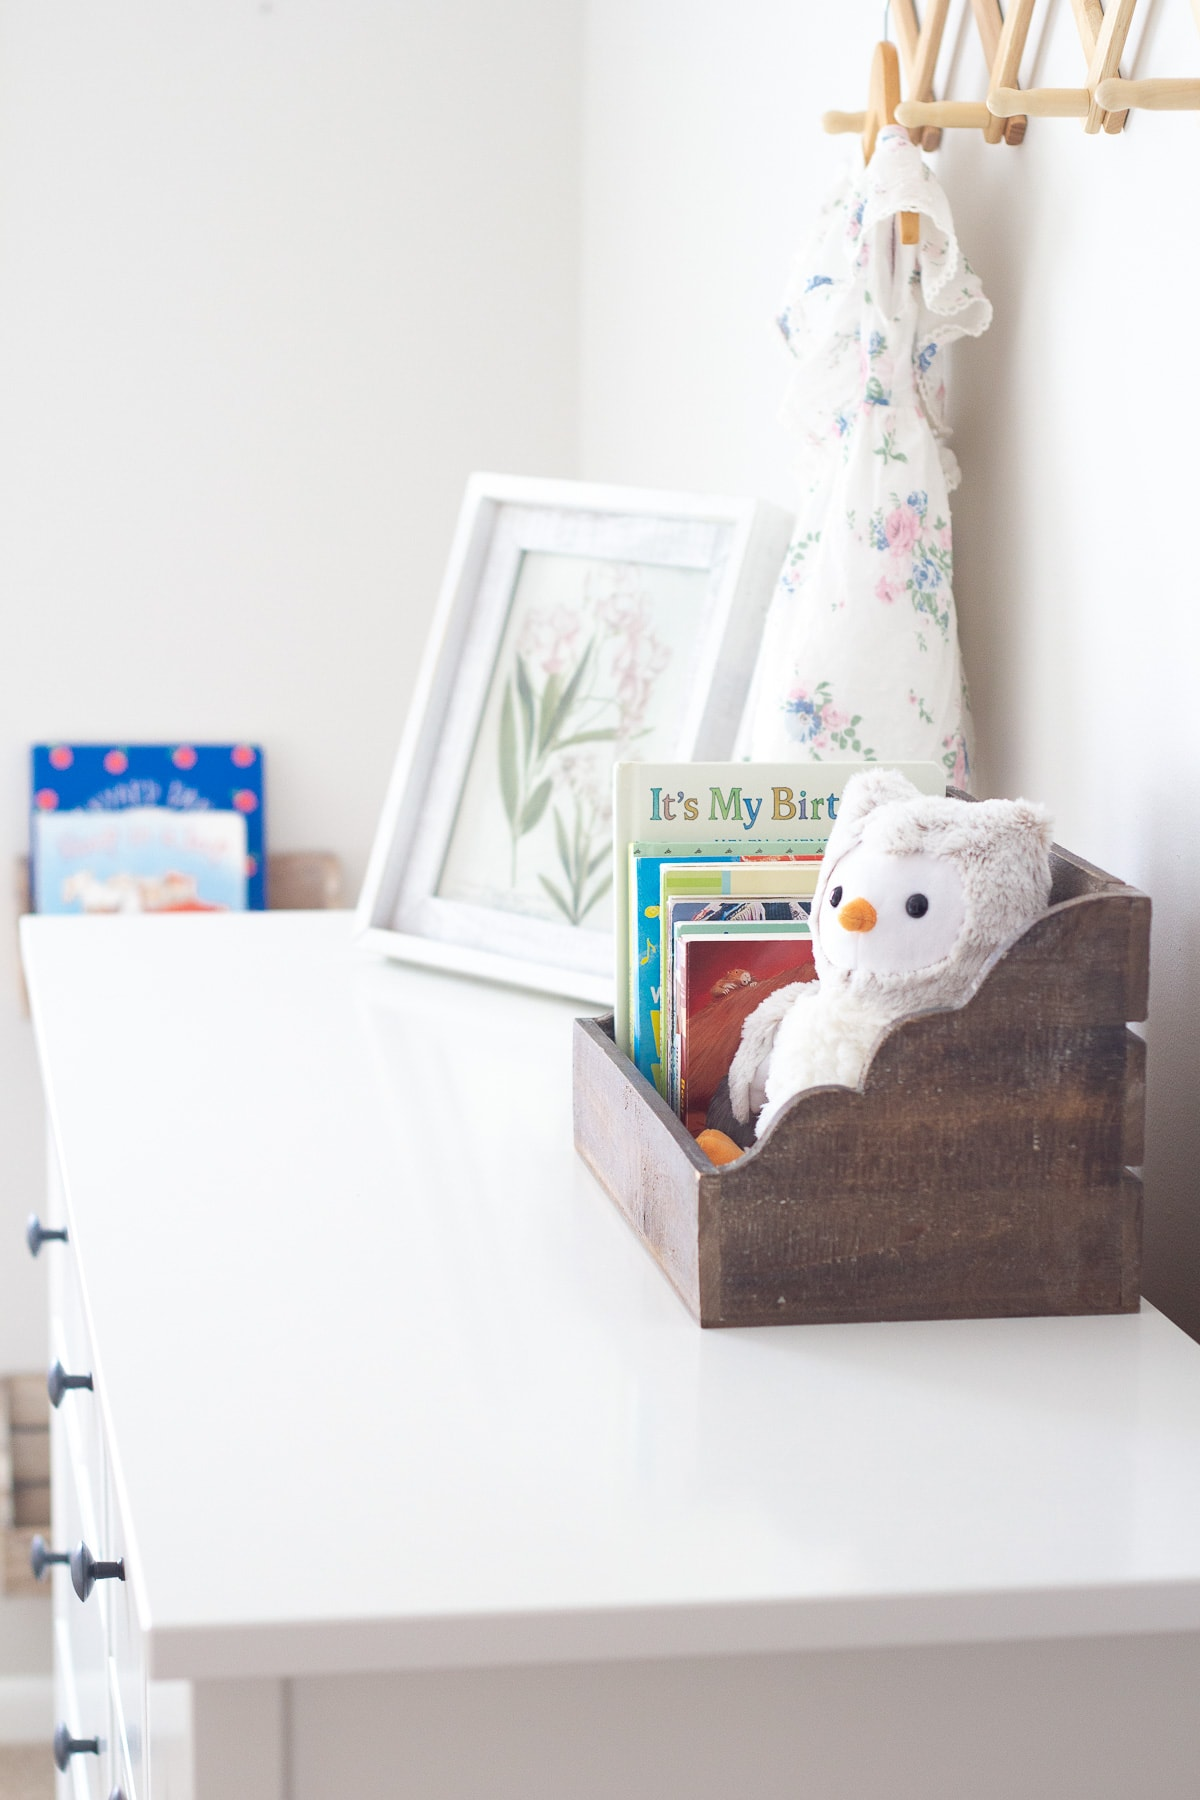 How to store kids books in a simple wooden crate.